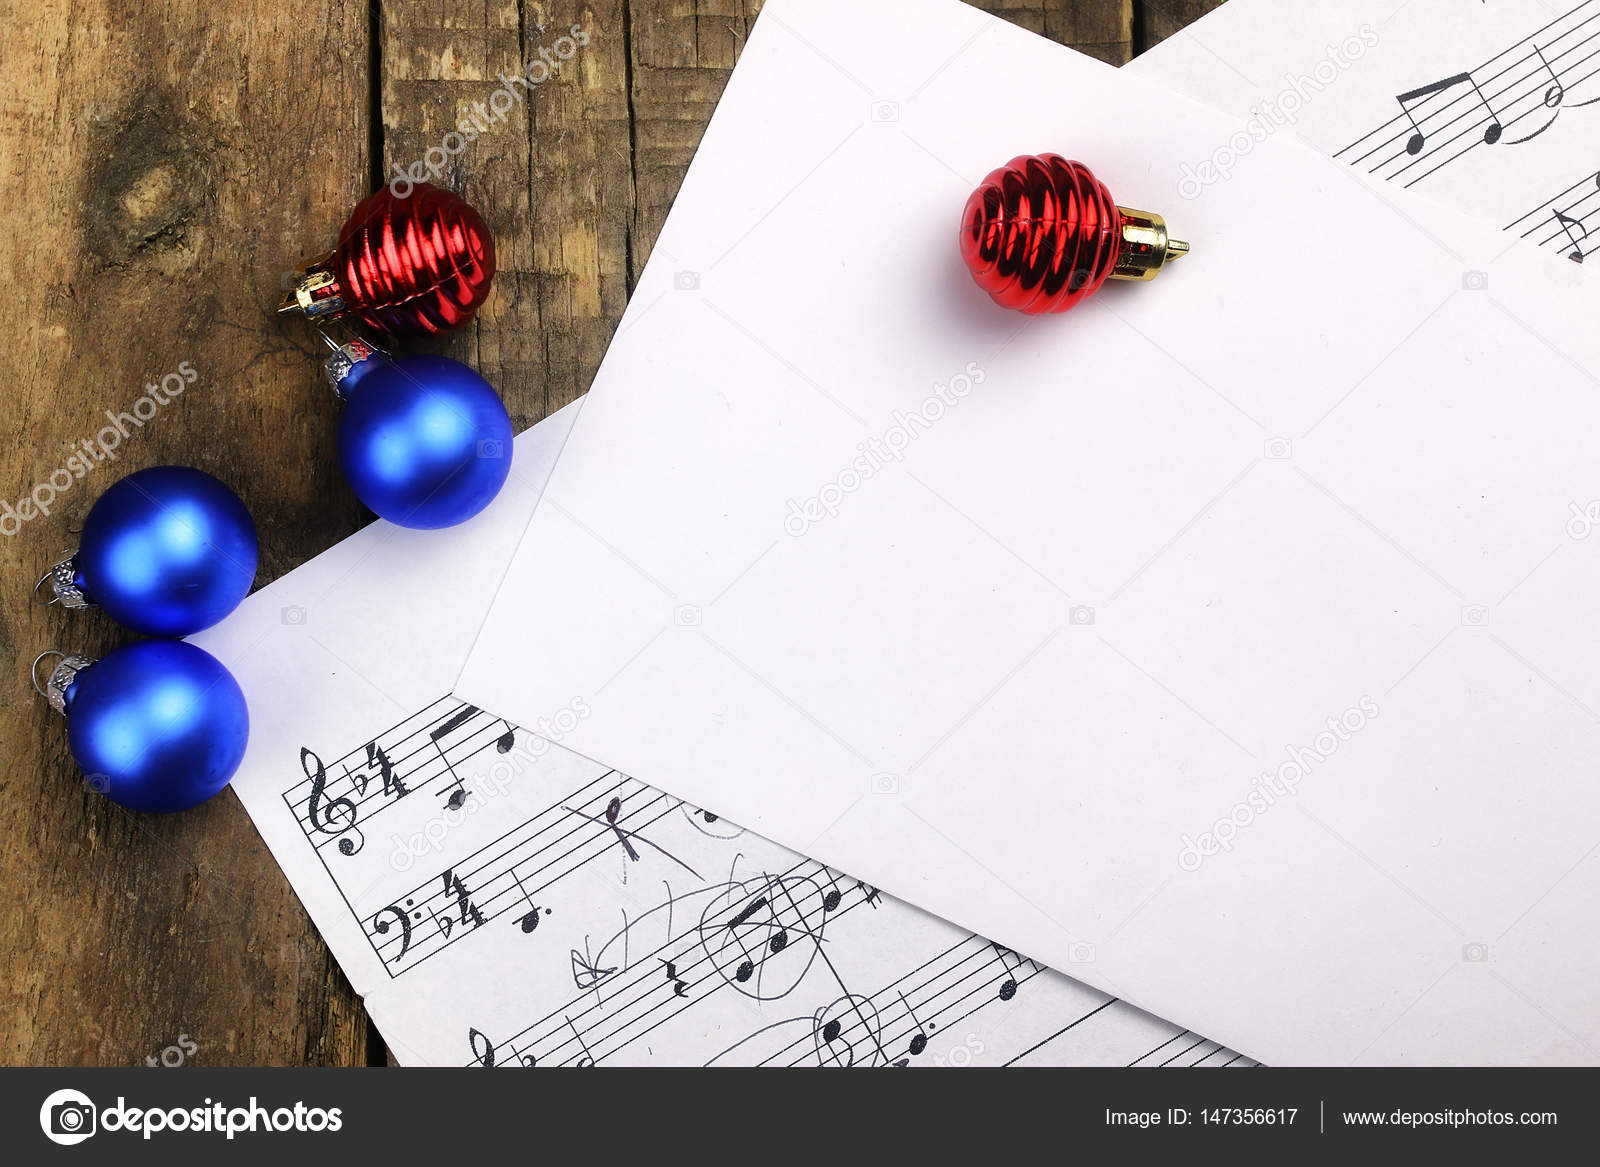 Christmas tree decorations on the table and sheet with music not– stock image